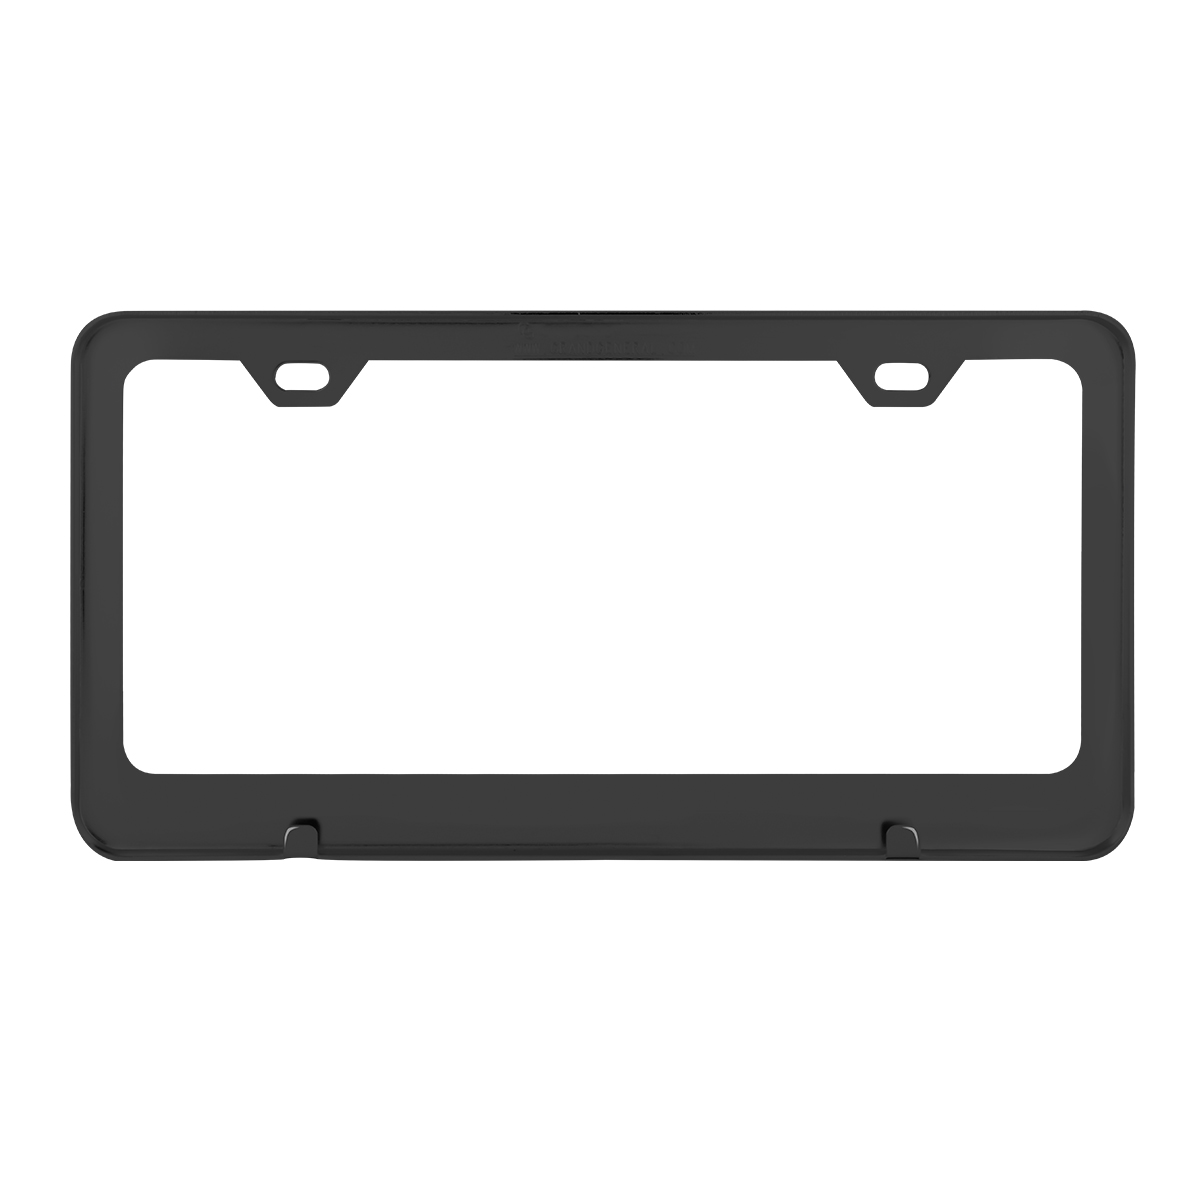 60439 Flat/Matte Plain Black 2 Hole License Plate Frame - Black View